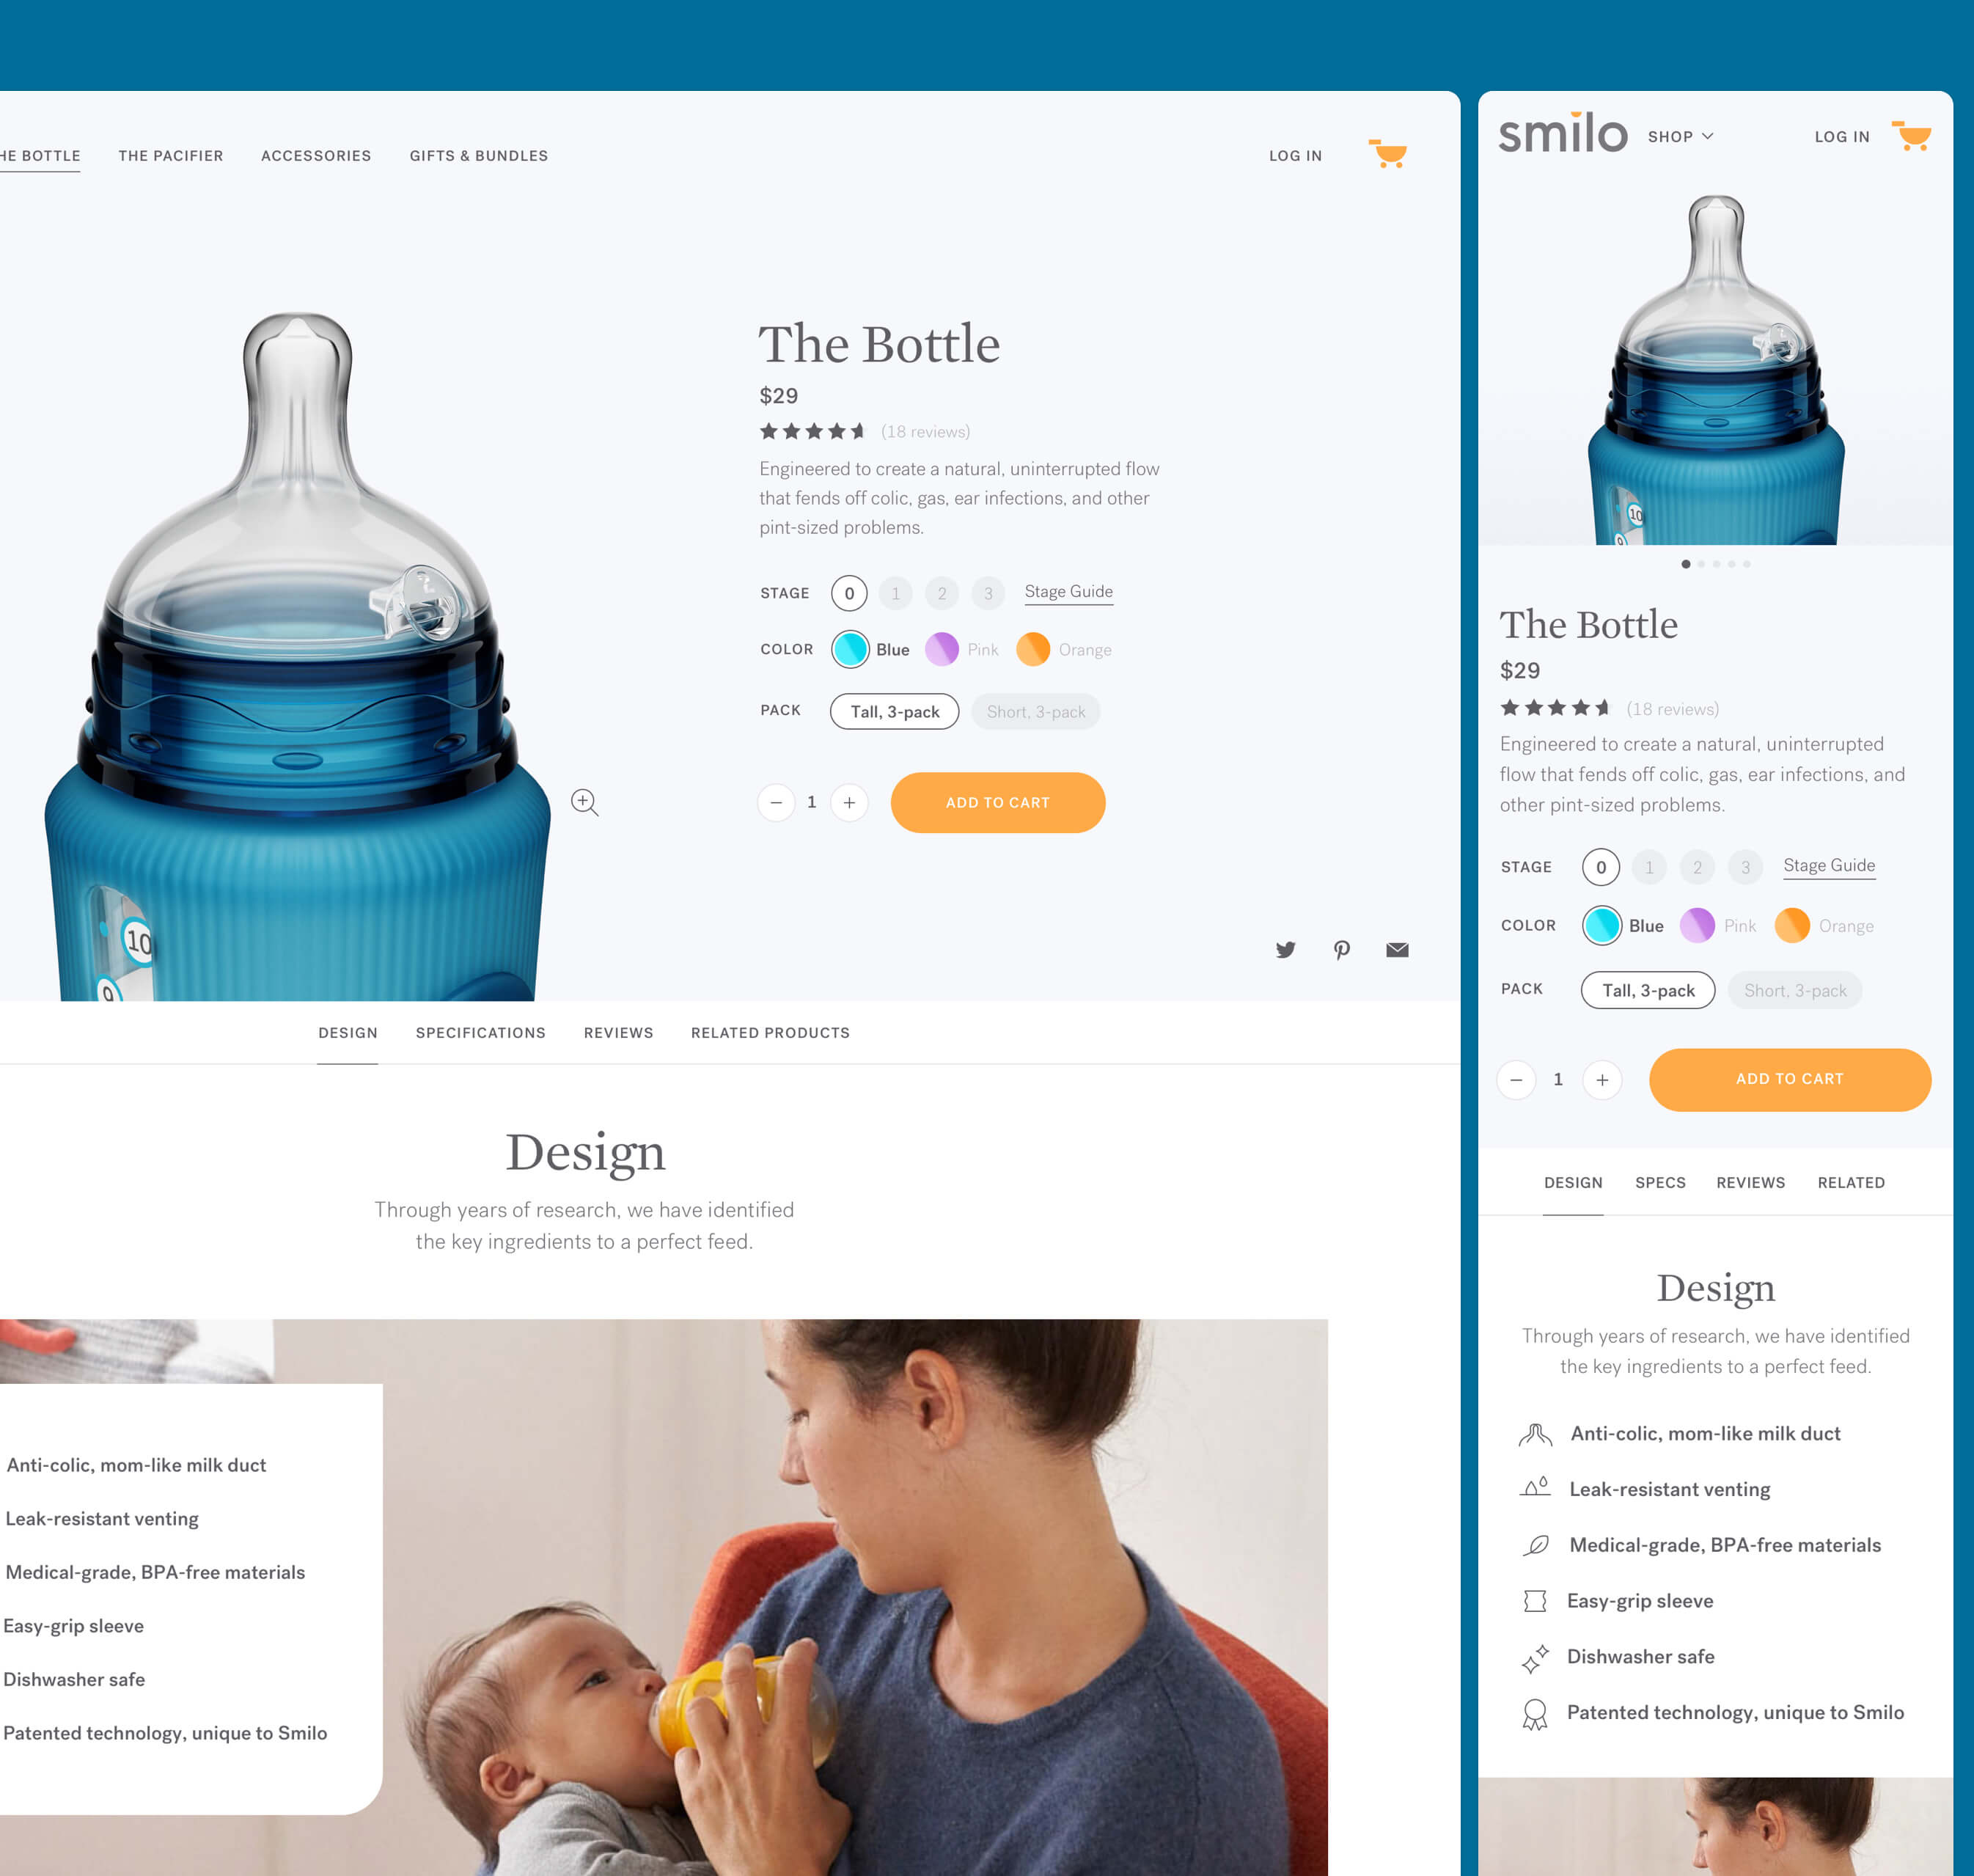 smilo product detail page